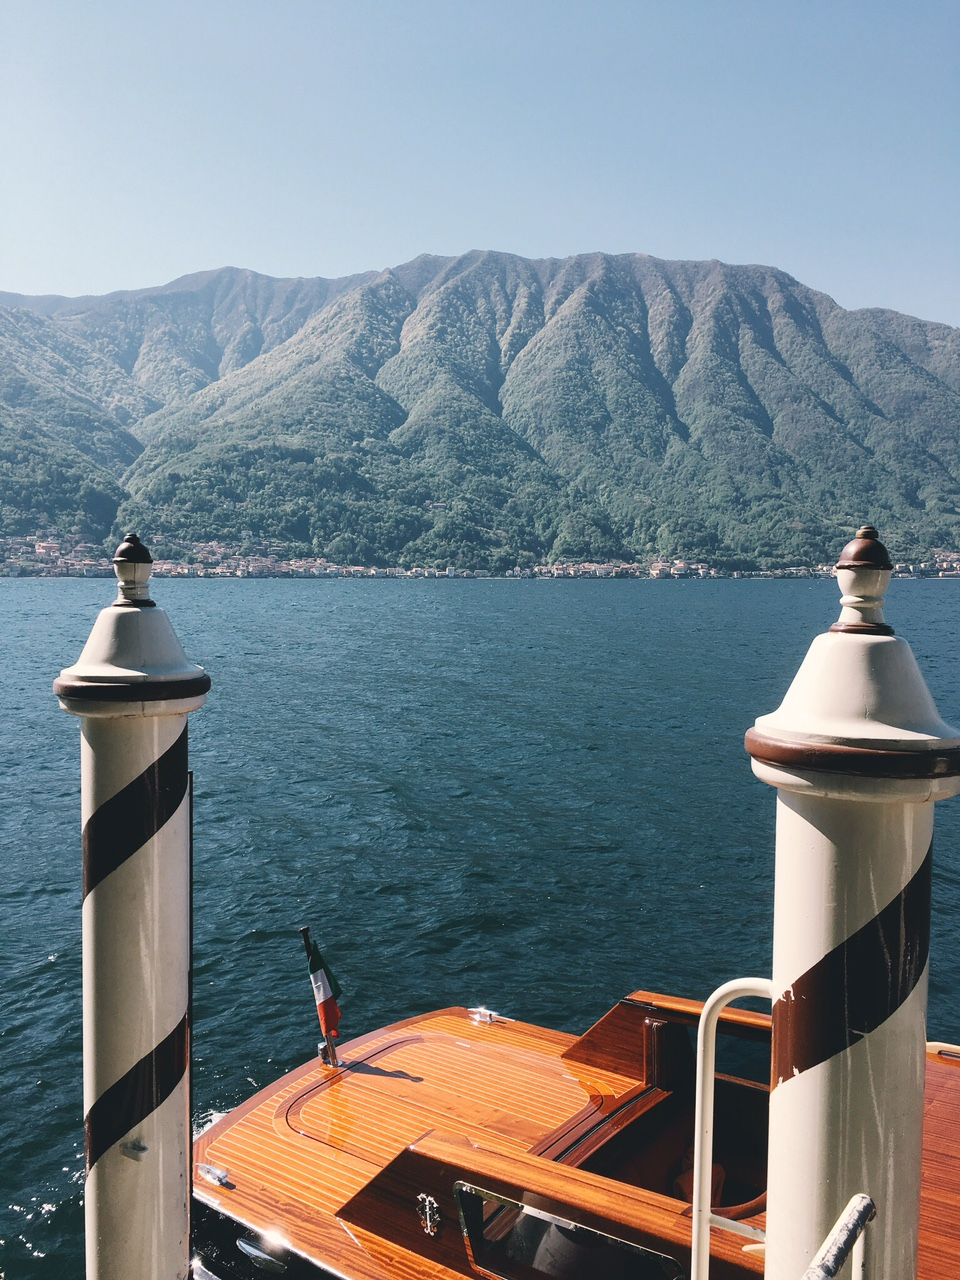 Lake Como view with dock and boat from Villa Balbianello